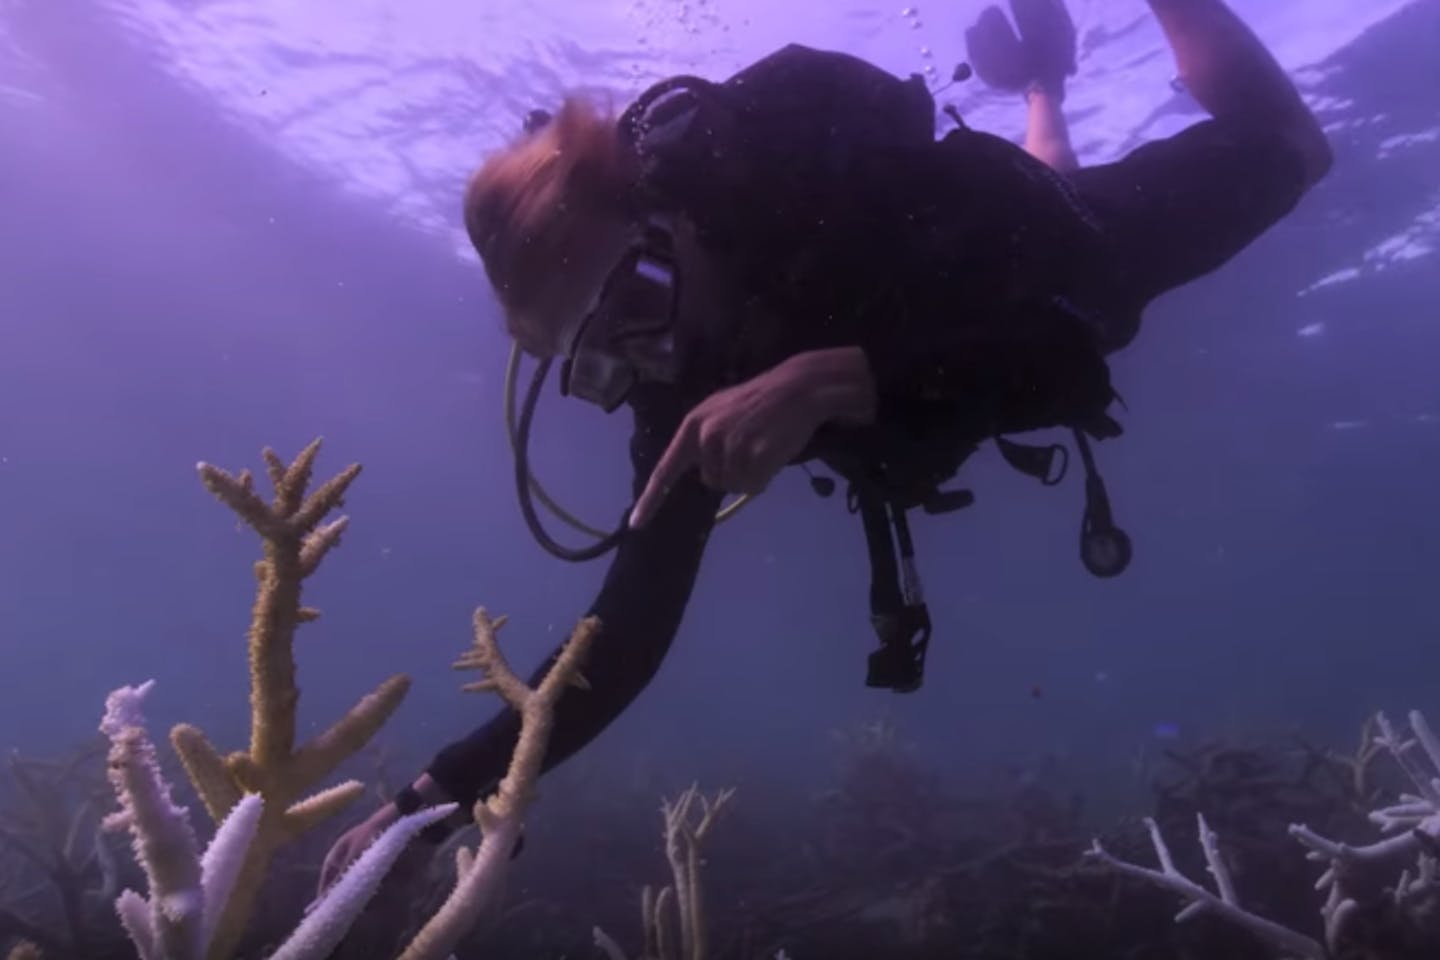 A scene from Chasing Coral, one of the films to feature at the Singapore Eco Film Festival this year. Image: Netflix